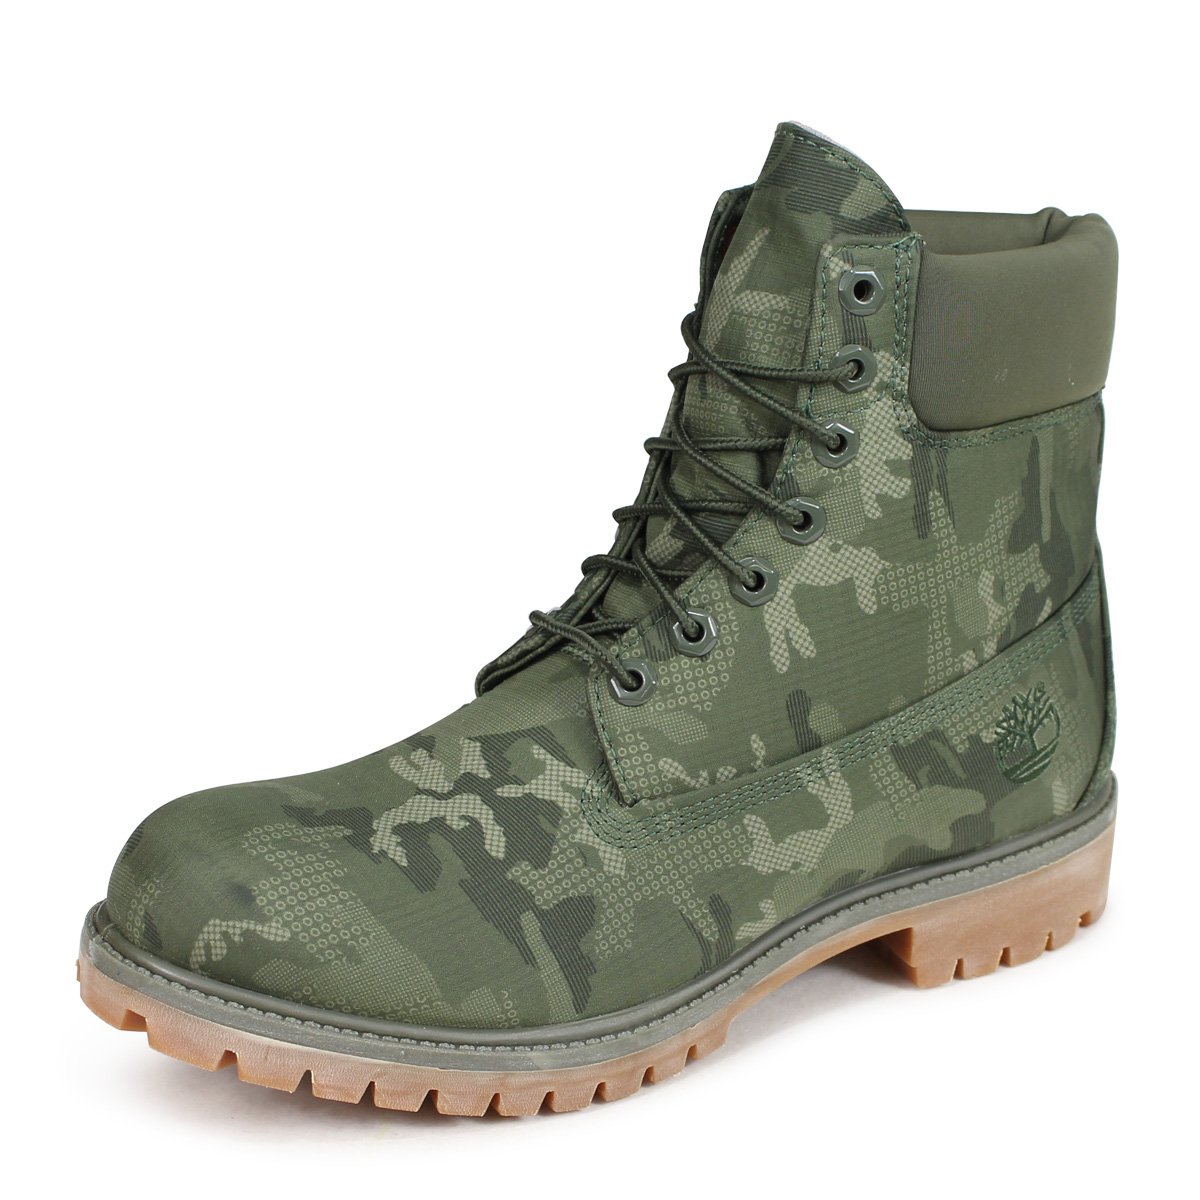 6 inches of Timberland 6 INCH PREMIUM FABRIC BOOTS Timberland boots men A1U9I W Wise dark green [192]